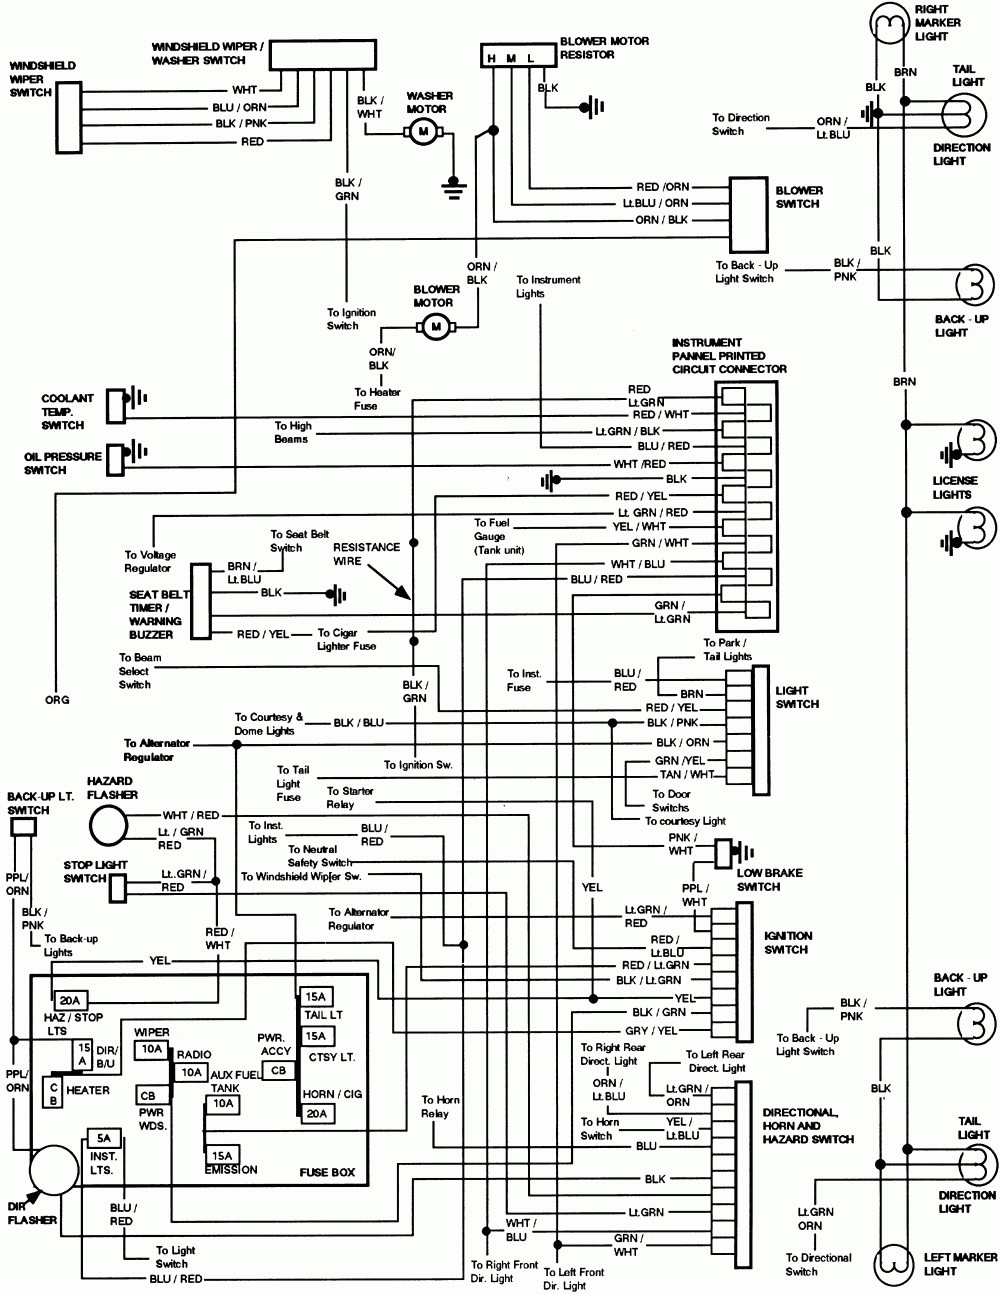 Ford F 150 Starter Wiring Diagram Ford F150 Wiring Harness Diagram